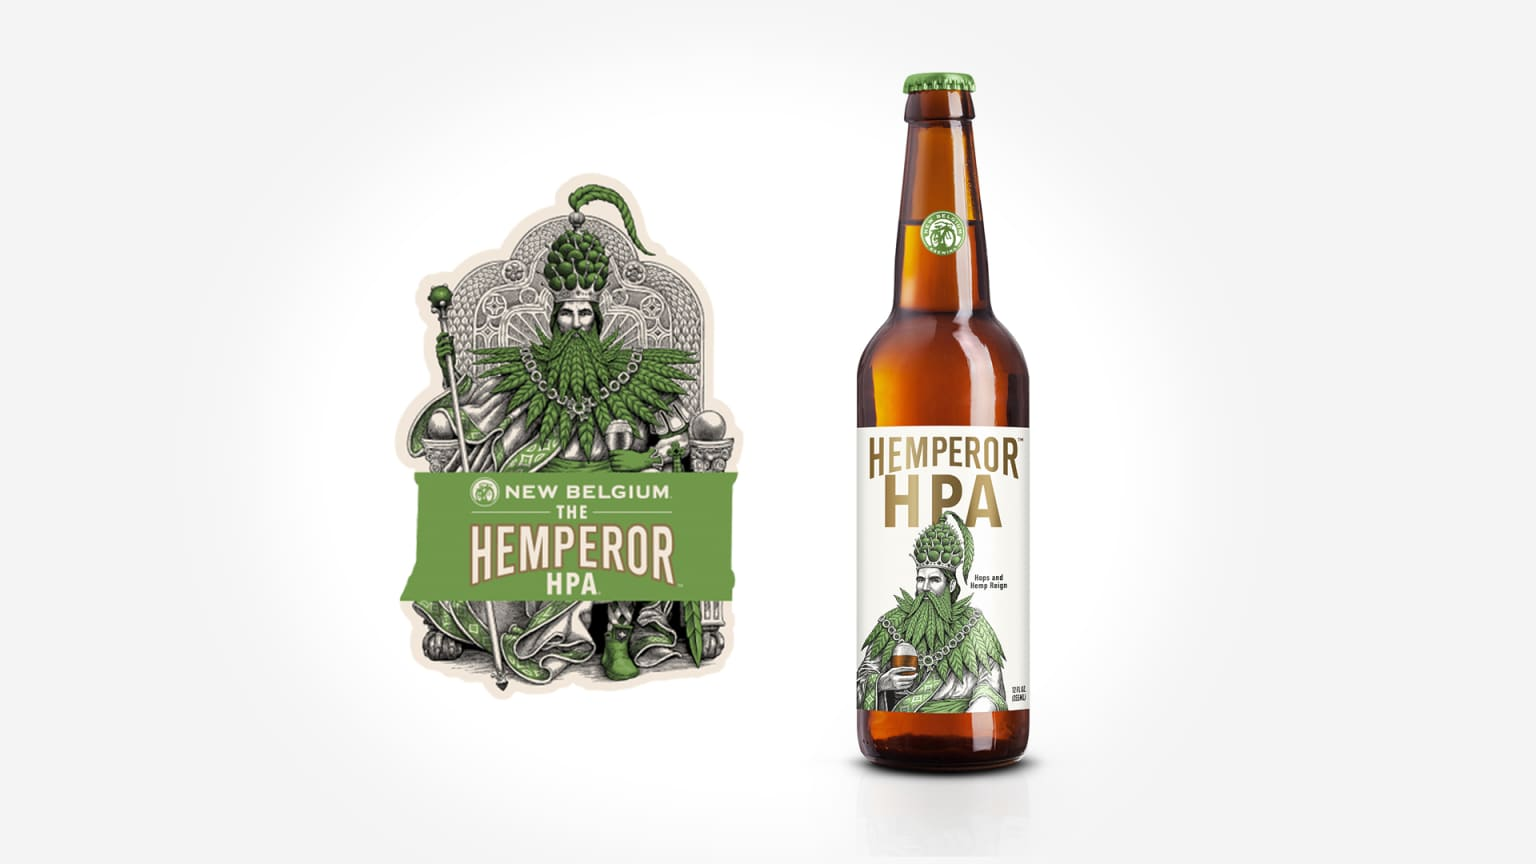 New Belgium Brewing: The Hemperor